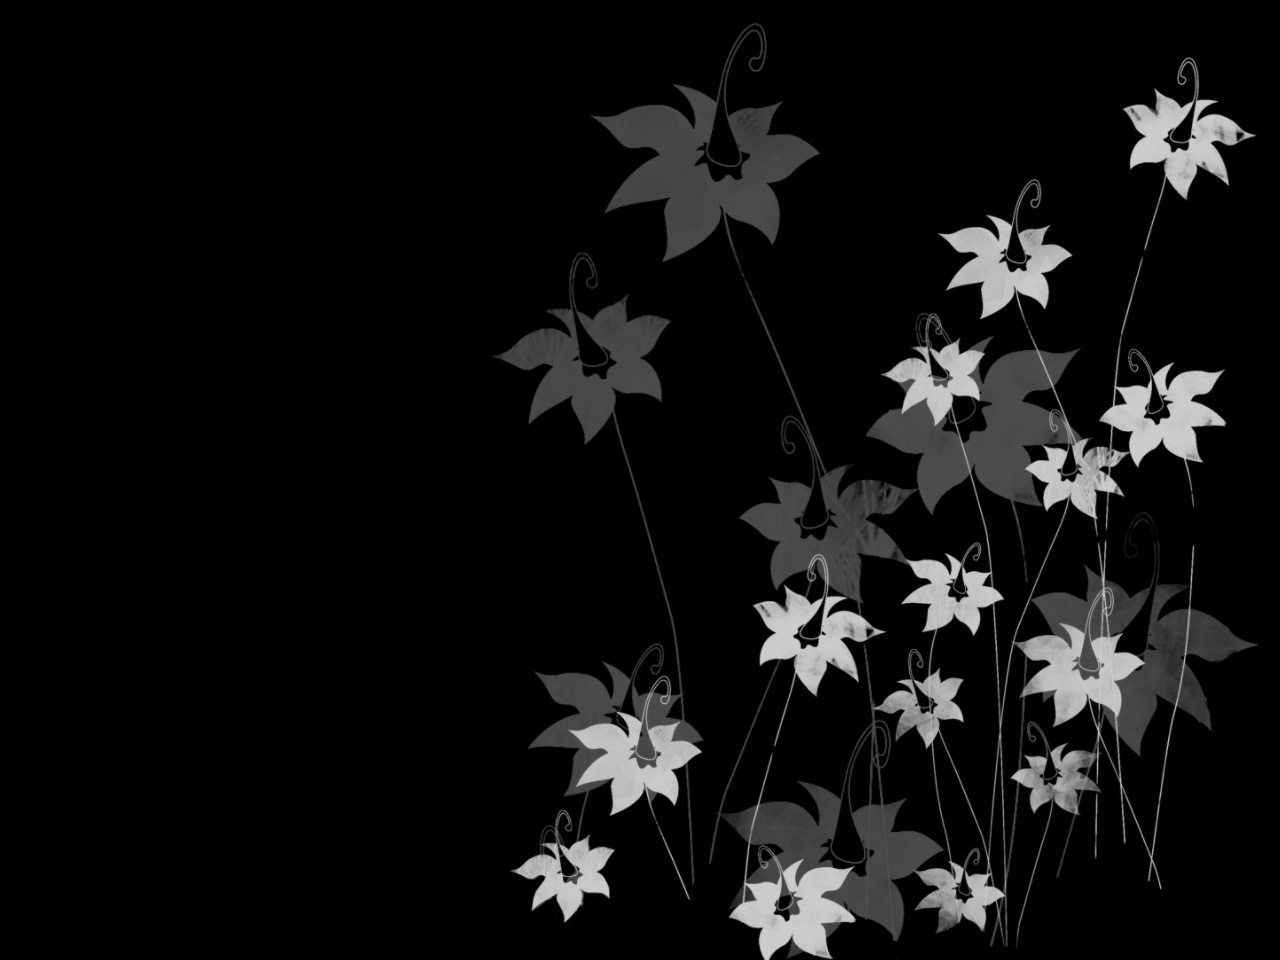 Floral Wallpaper With Black Background 24 Desktop Wallpaper